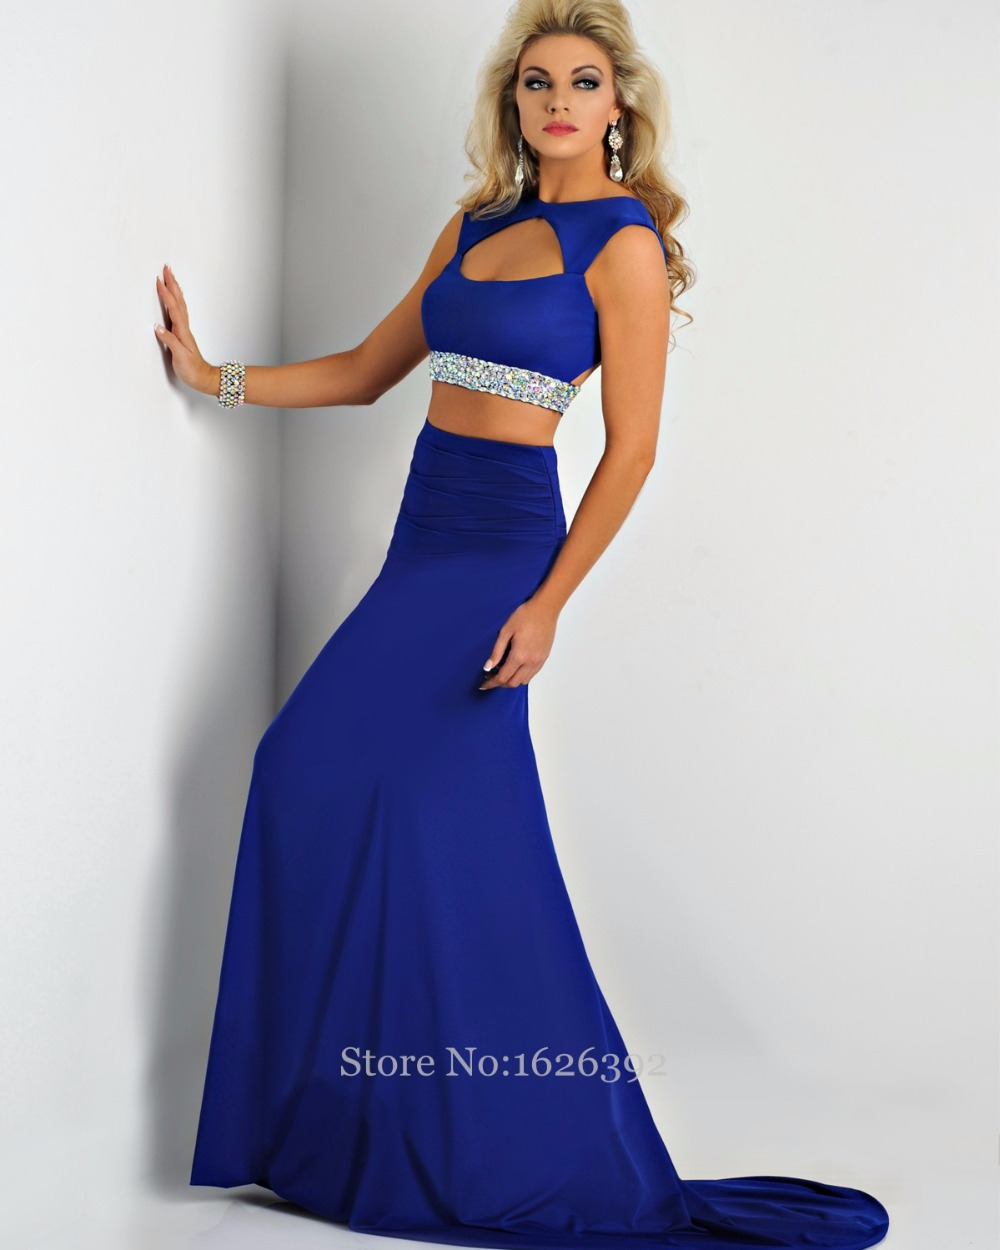 Aliexpress.com : Buy Sey Two Pieces Mermaid Prom Dress Royal Blue ...